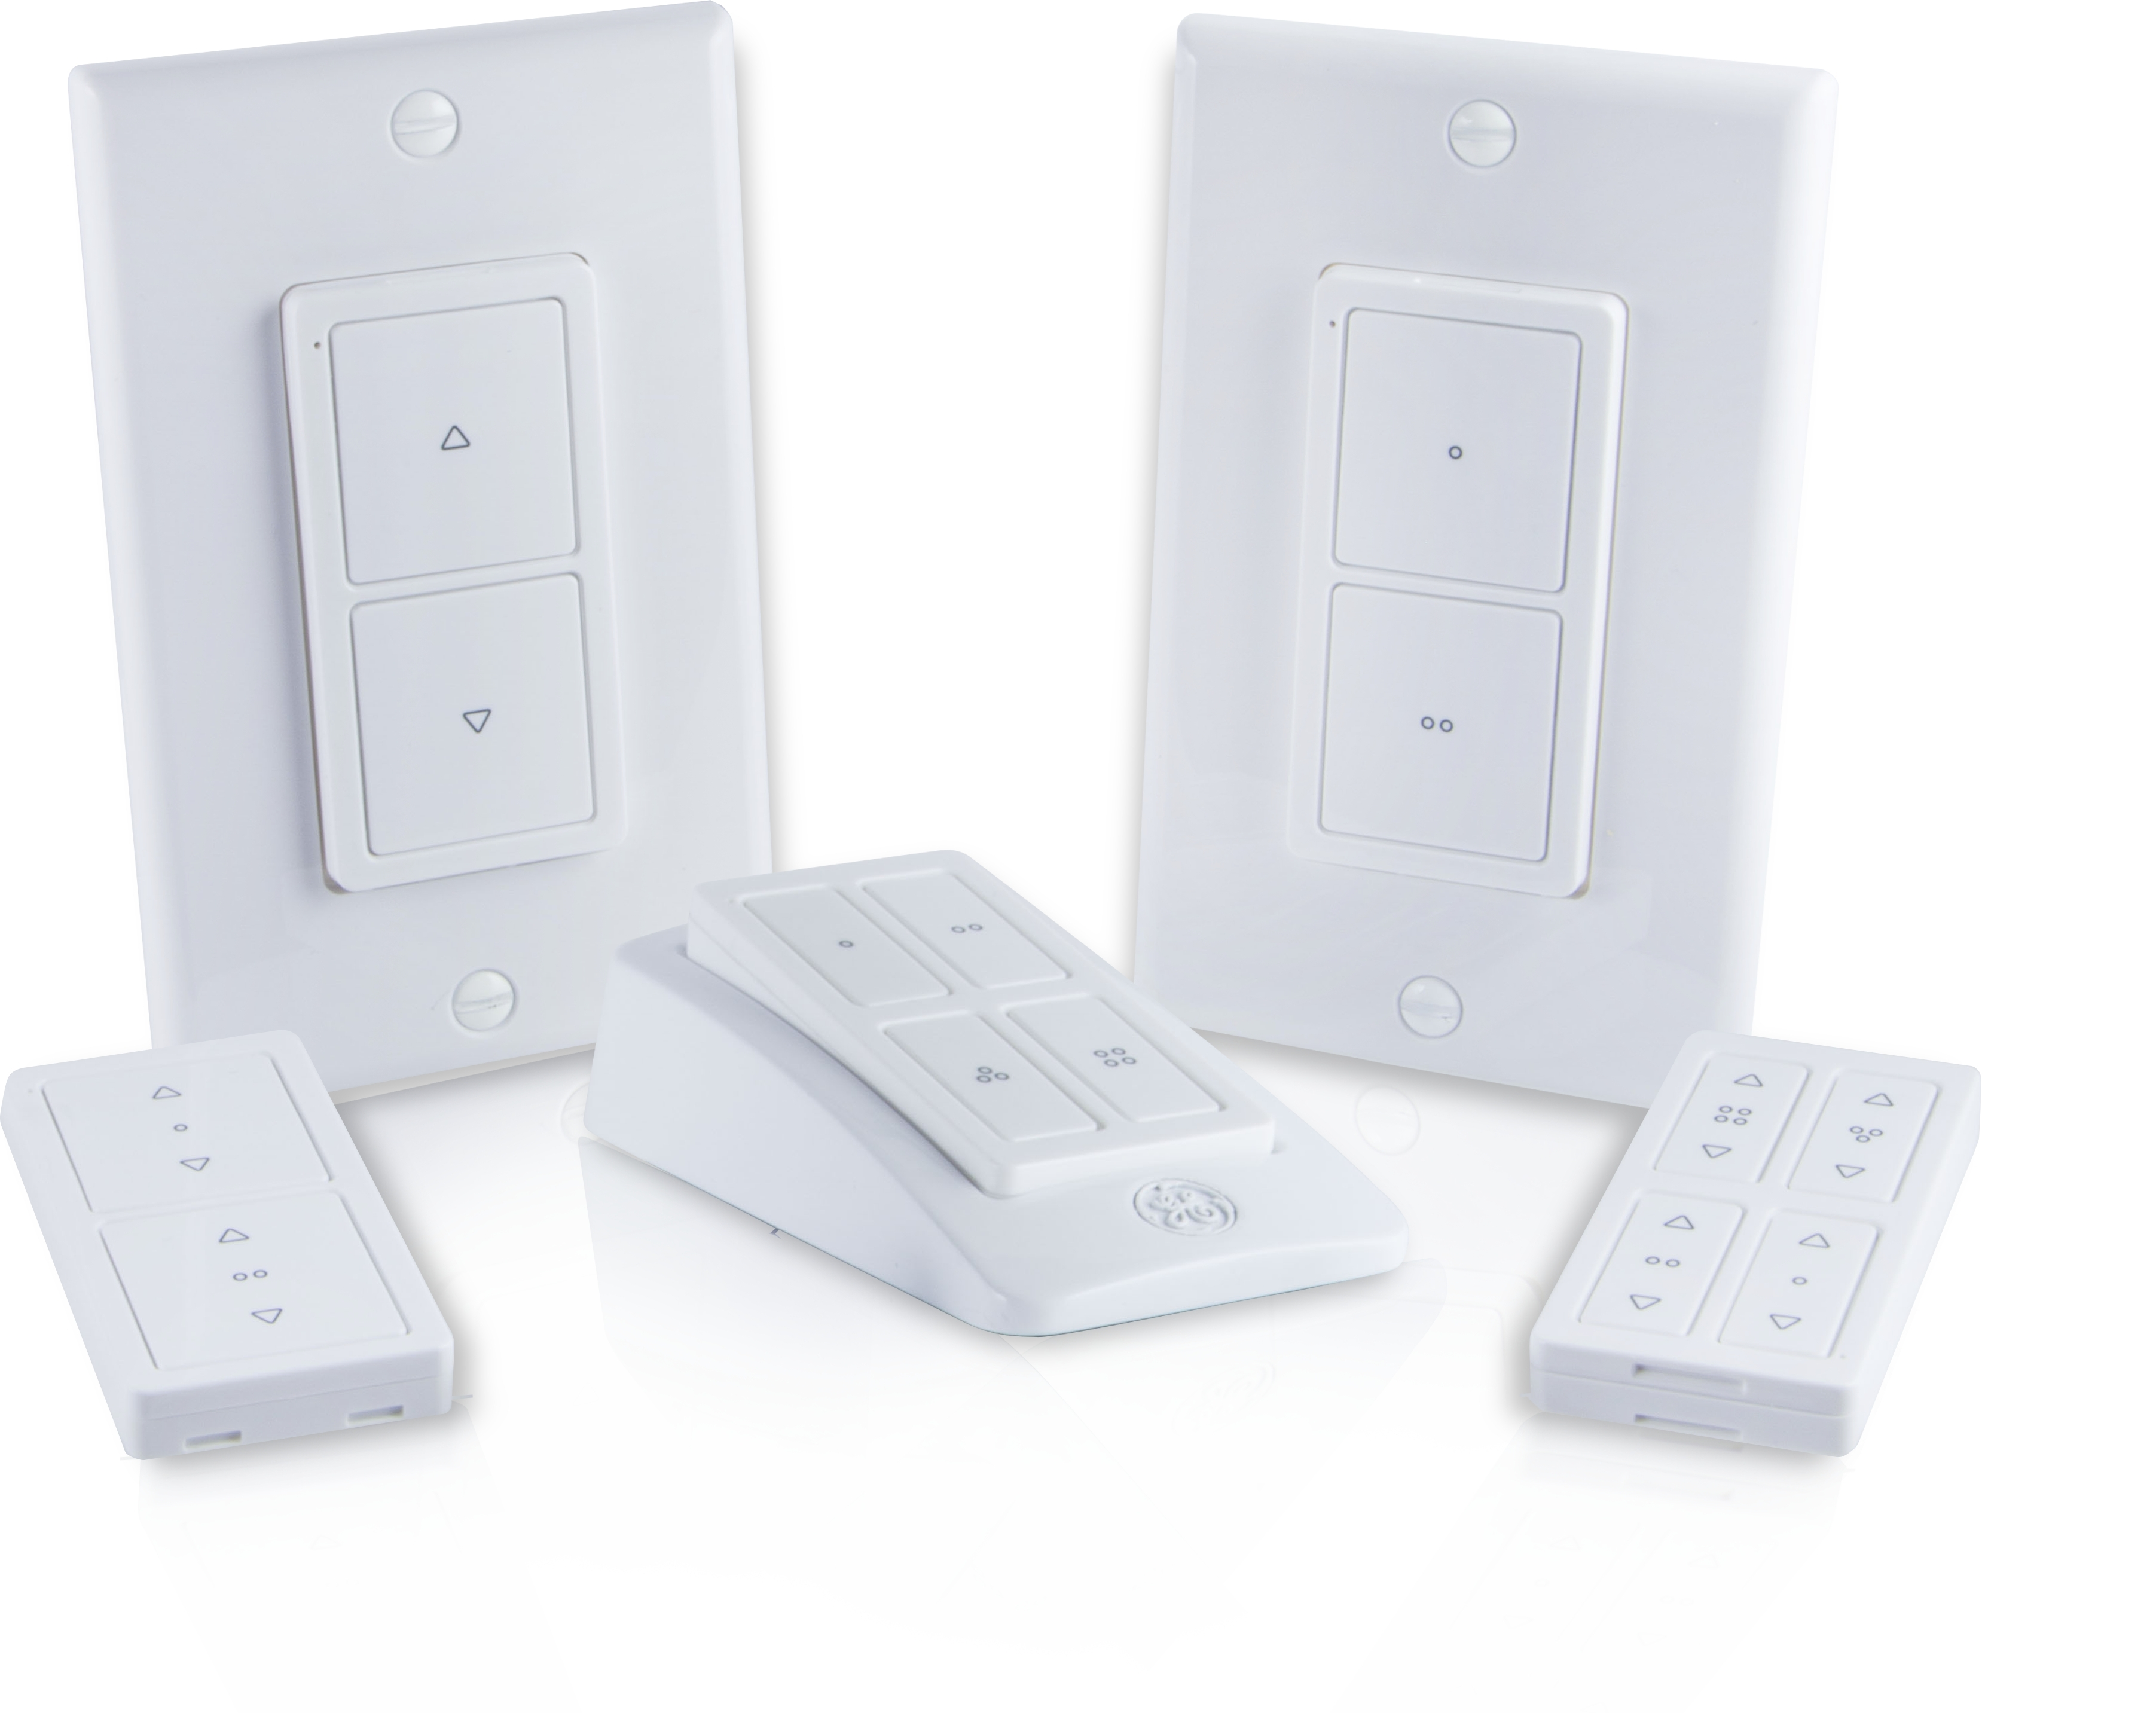 Jasco Introduces Five New Ge Branded Z Wave Wireless Smart